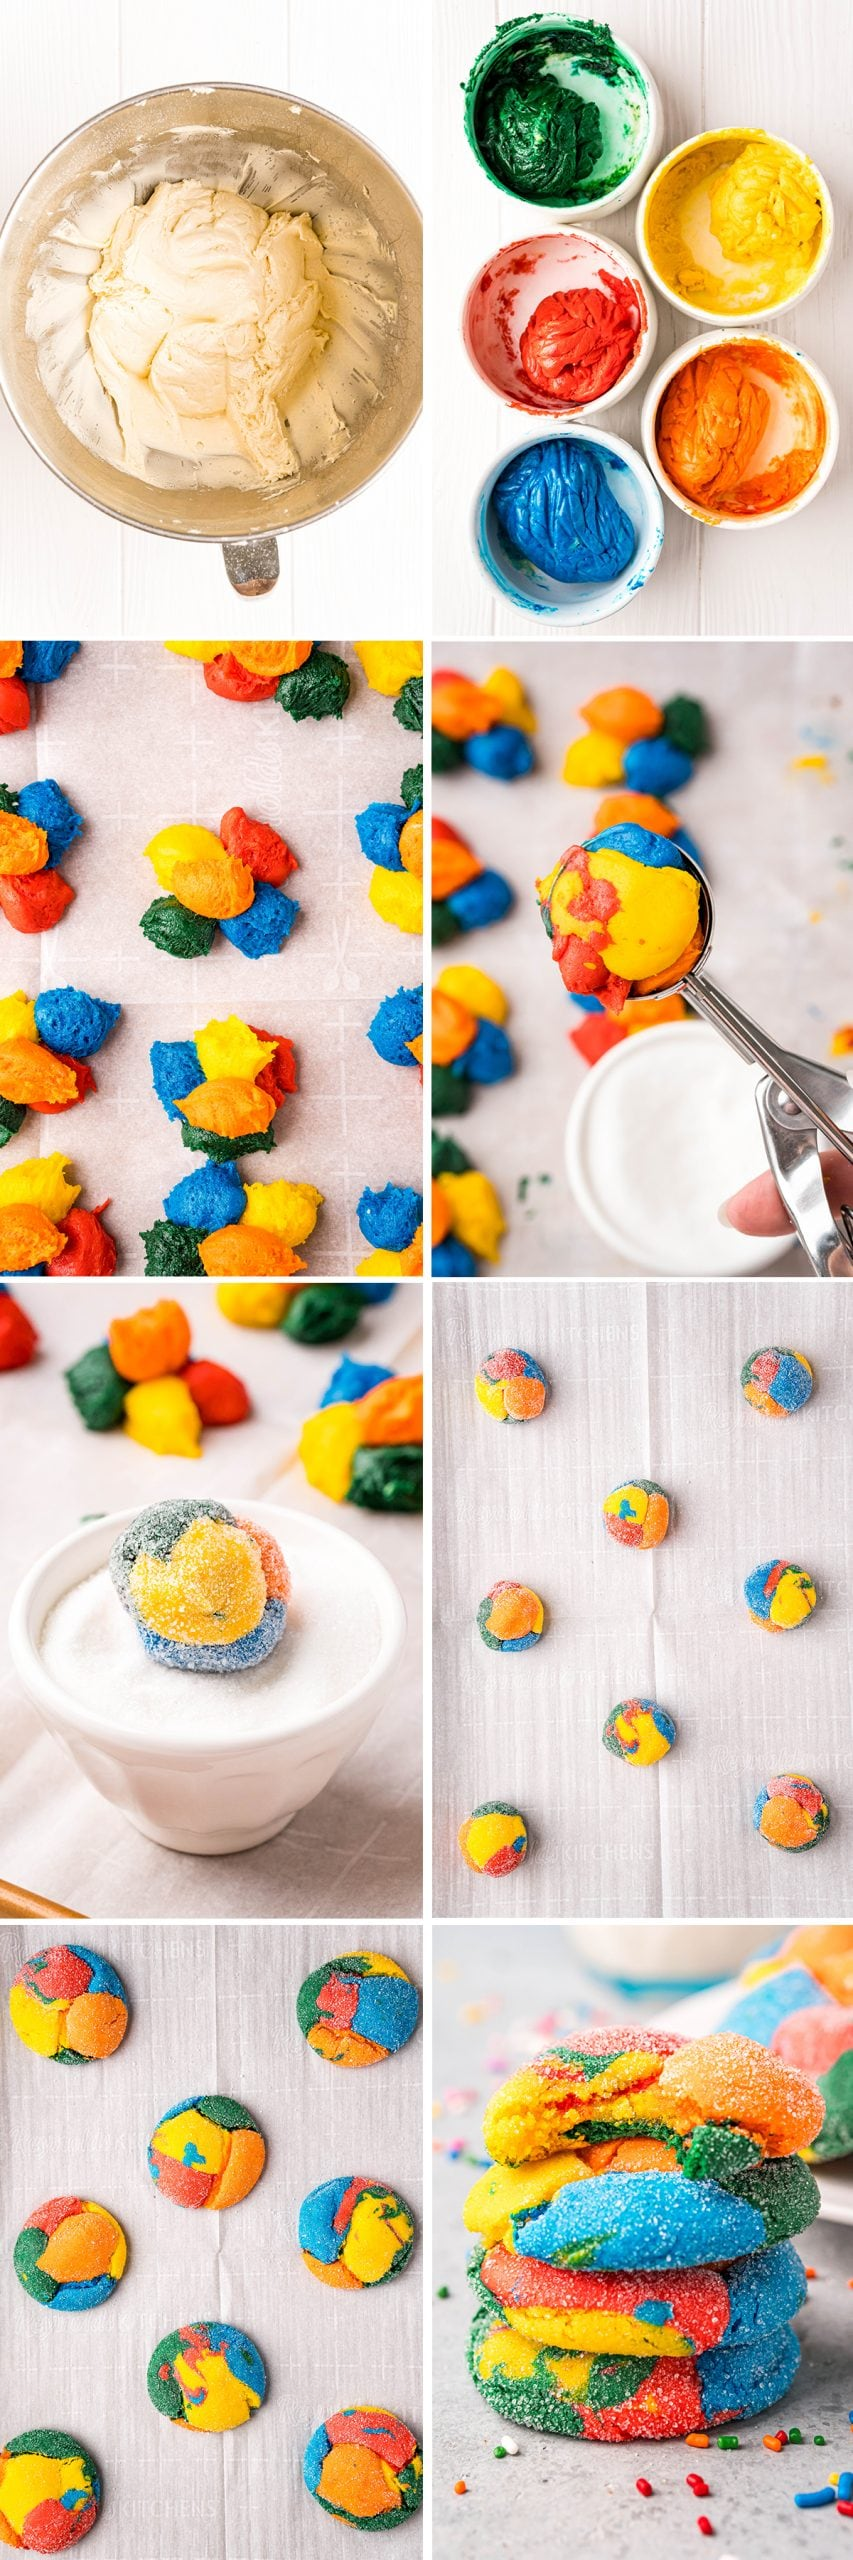 A collage of 8 step by step photos showing how to make rainbow cake mix cookies. Showing the dough in a bowl, then separated into colors, then dolloped into a pile, then rolled into balls, then rolled into sugar, placed on a baking sheet, then baked.